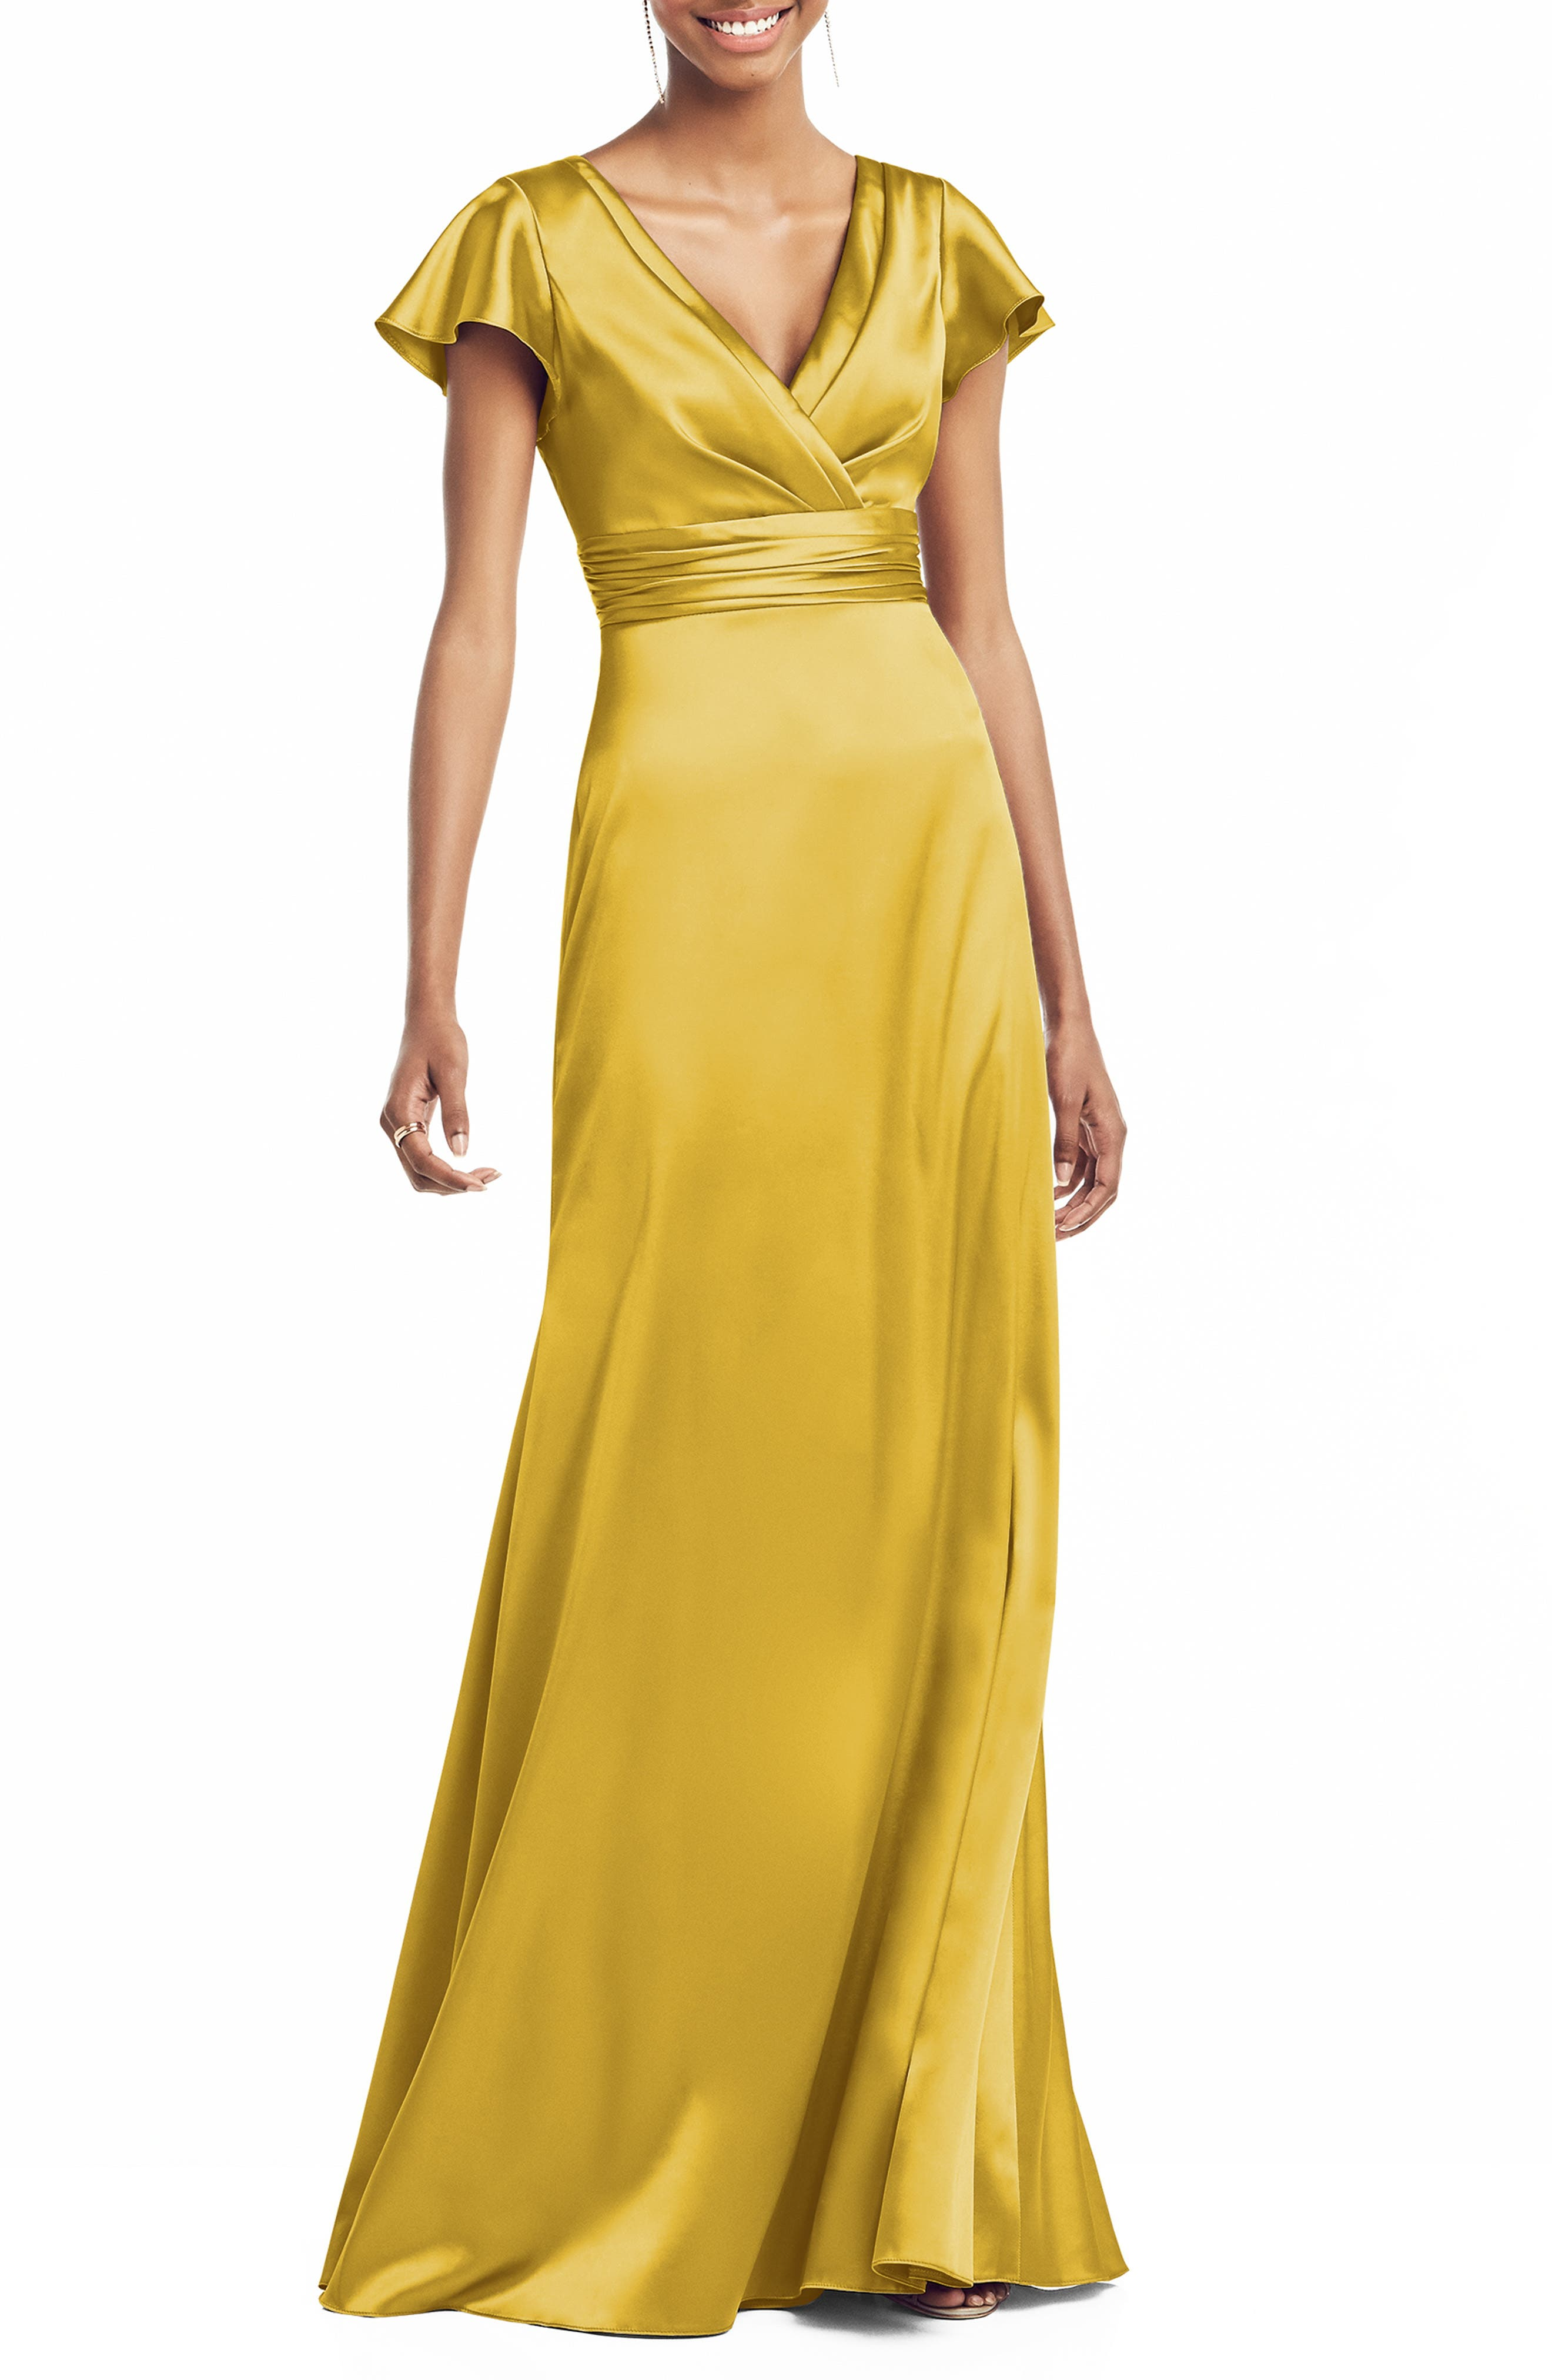 1920s, 1930s Mother of the Bride/Groom Dresses Womens Social Bridesmaids V-Neck Satin Trumpet Gown Size 4 - Yellow $248.00 AT vintagedancer.com